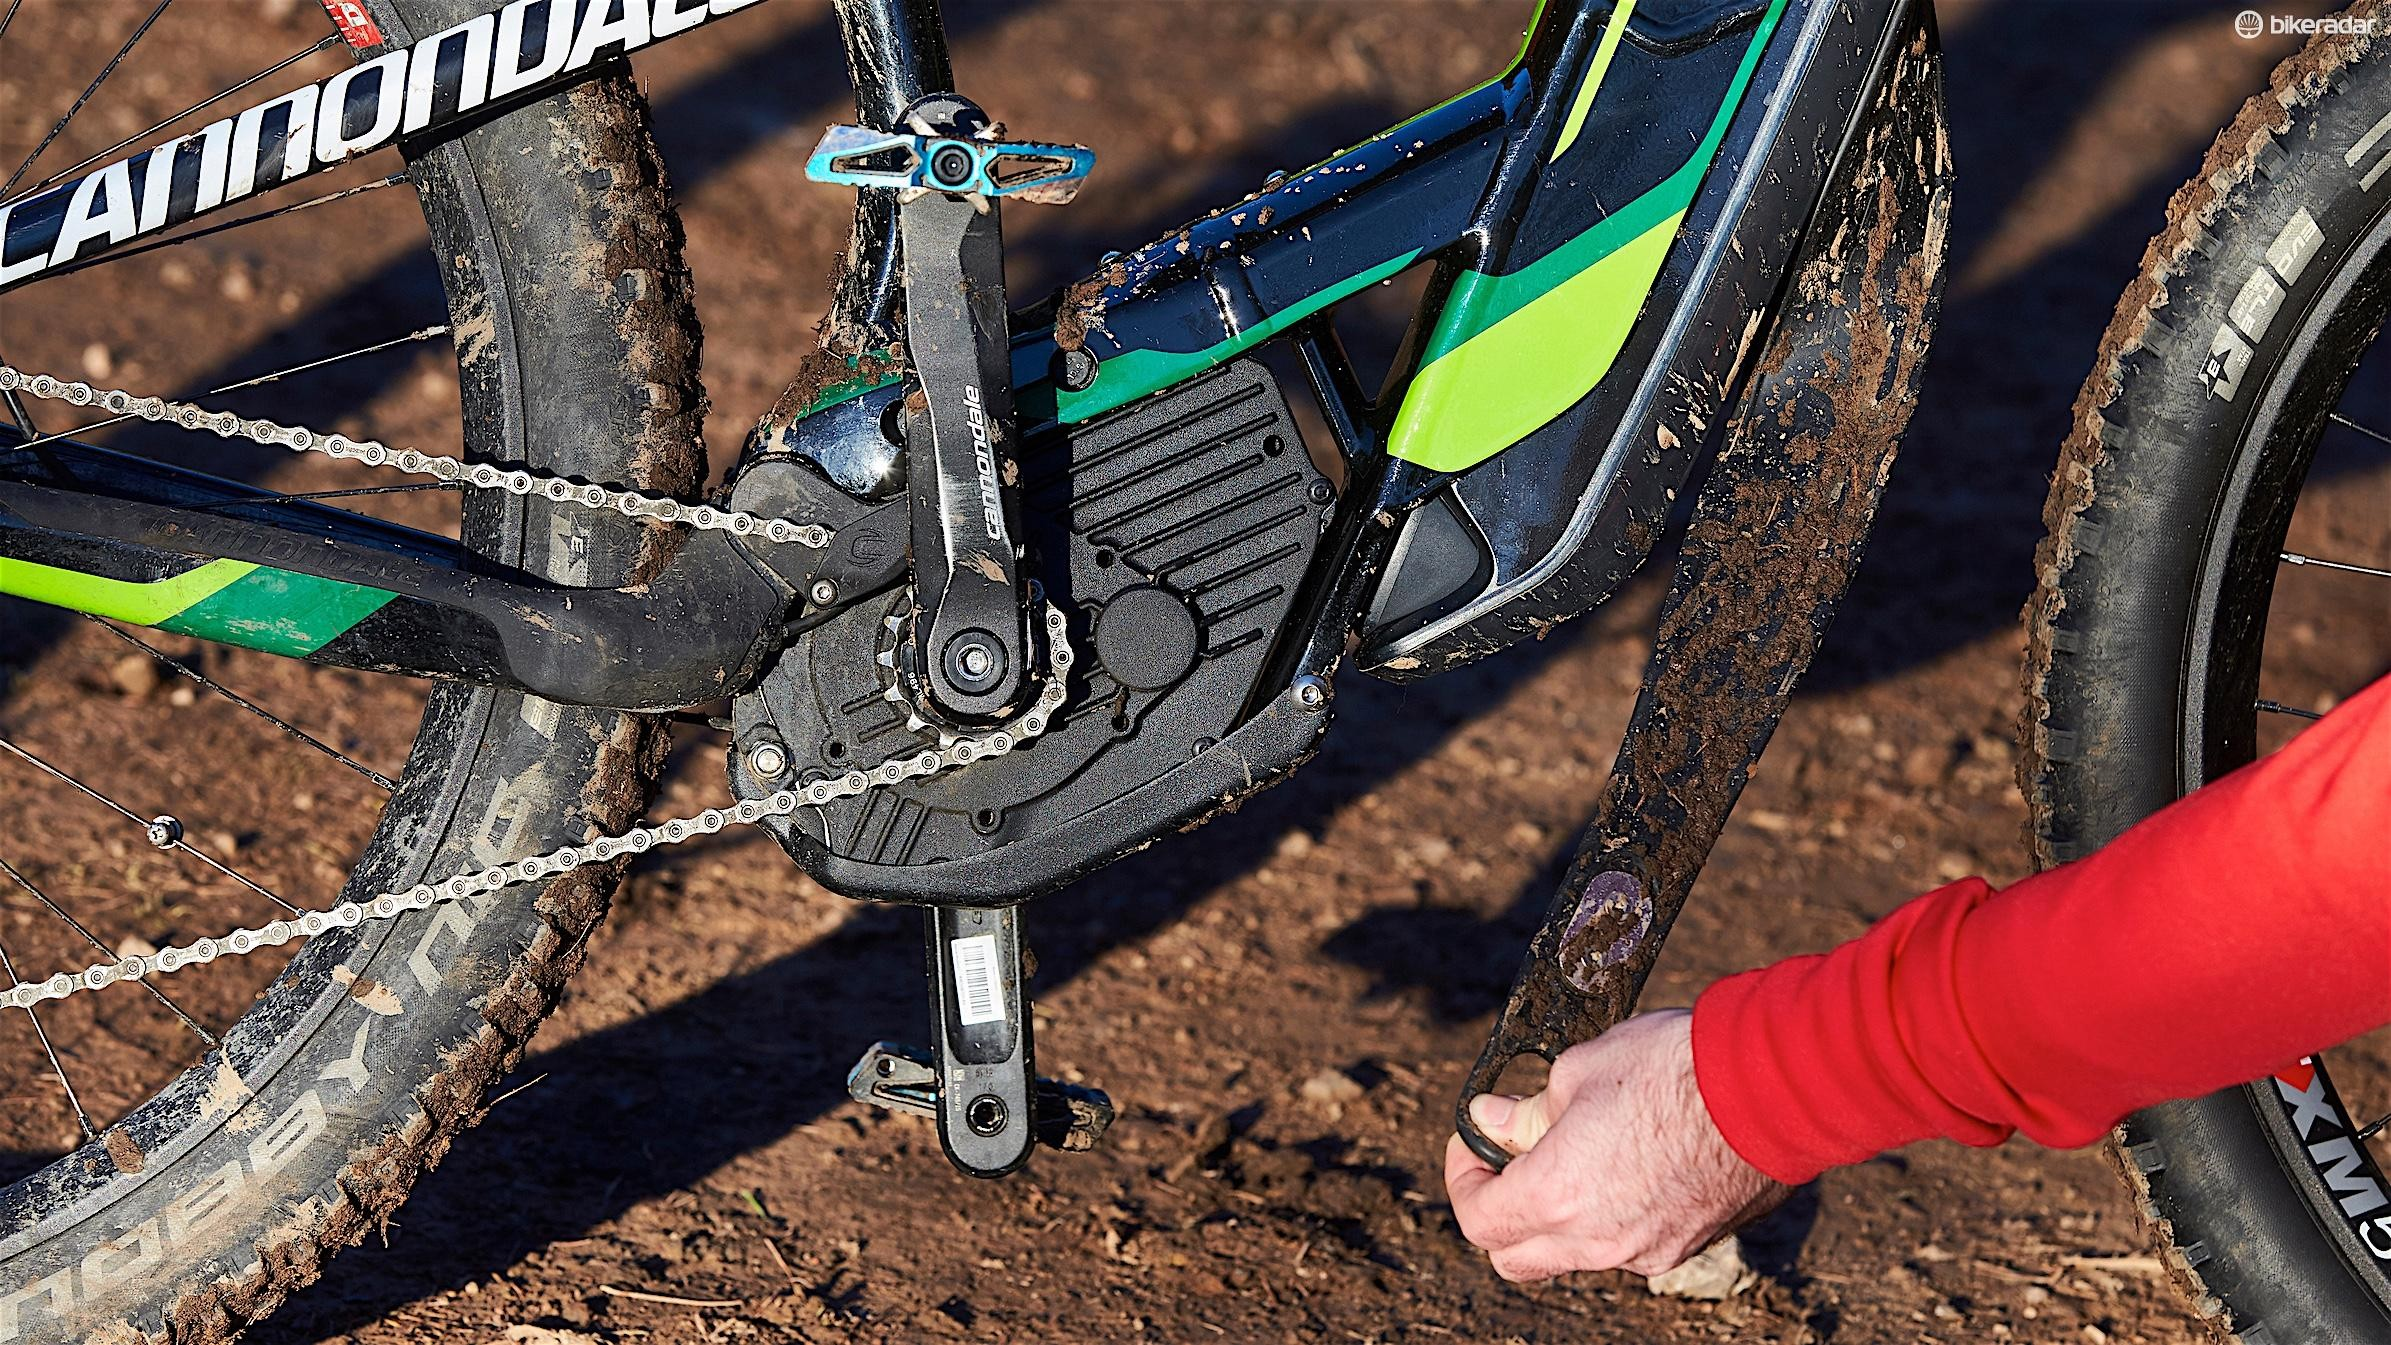 To add battery security and a bit of extra protection, the Moterra features the 'BatStrap'. This helps to securely harness the battery inside the frame, attaching underneath the Bosch 250w motor